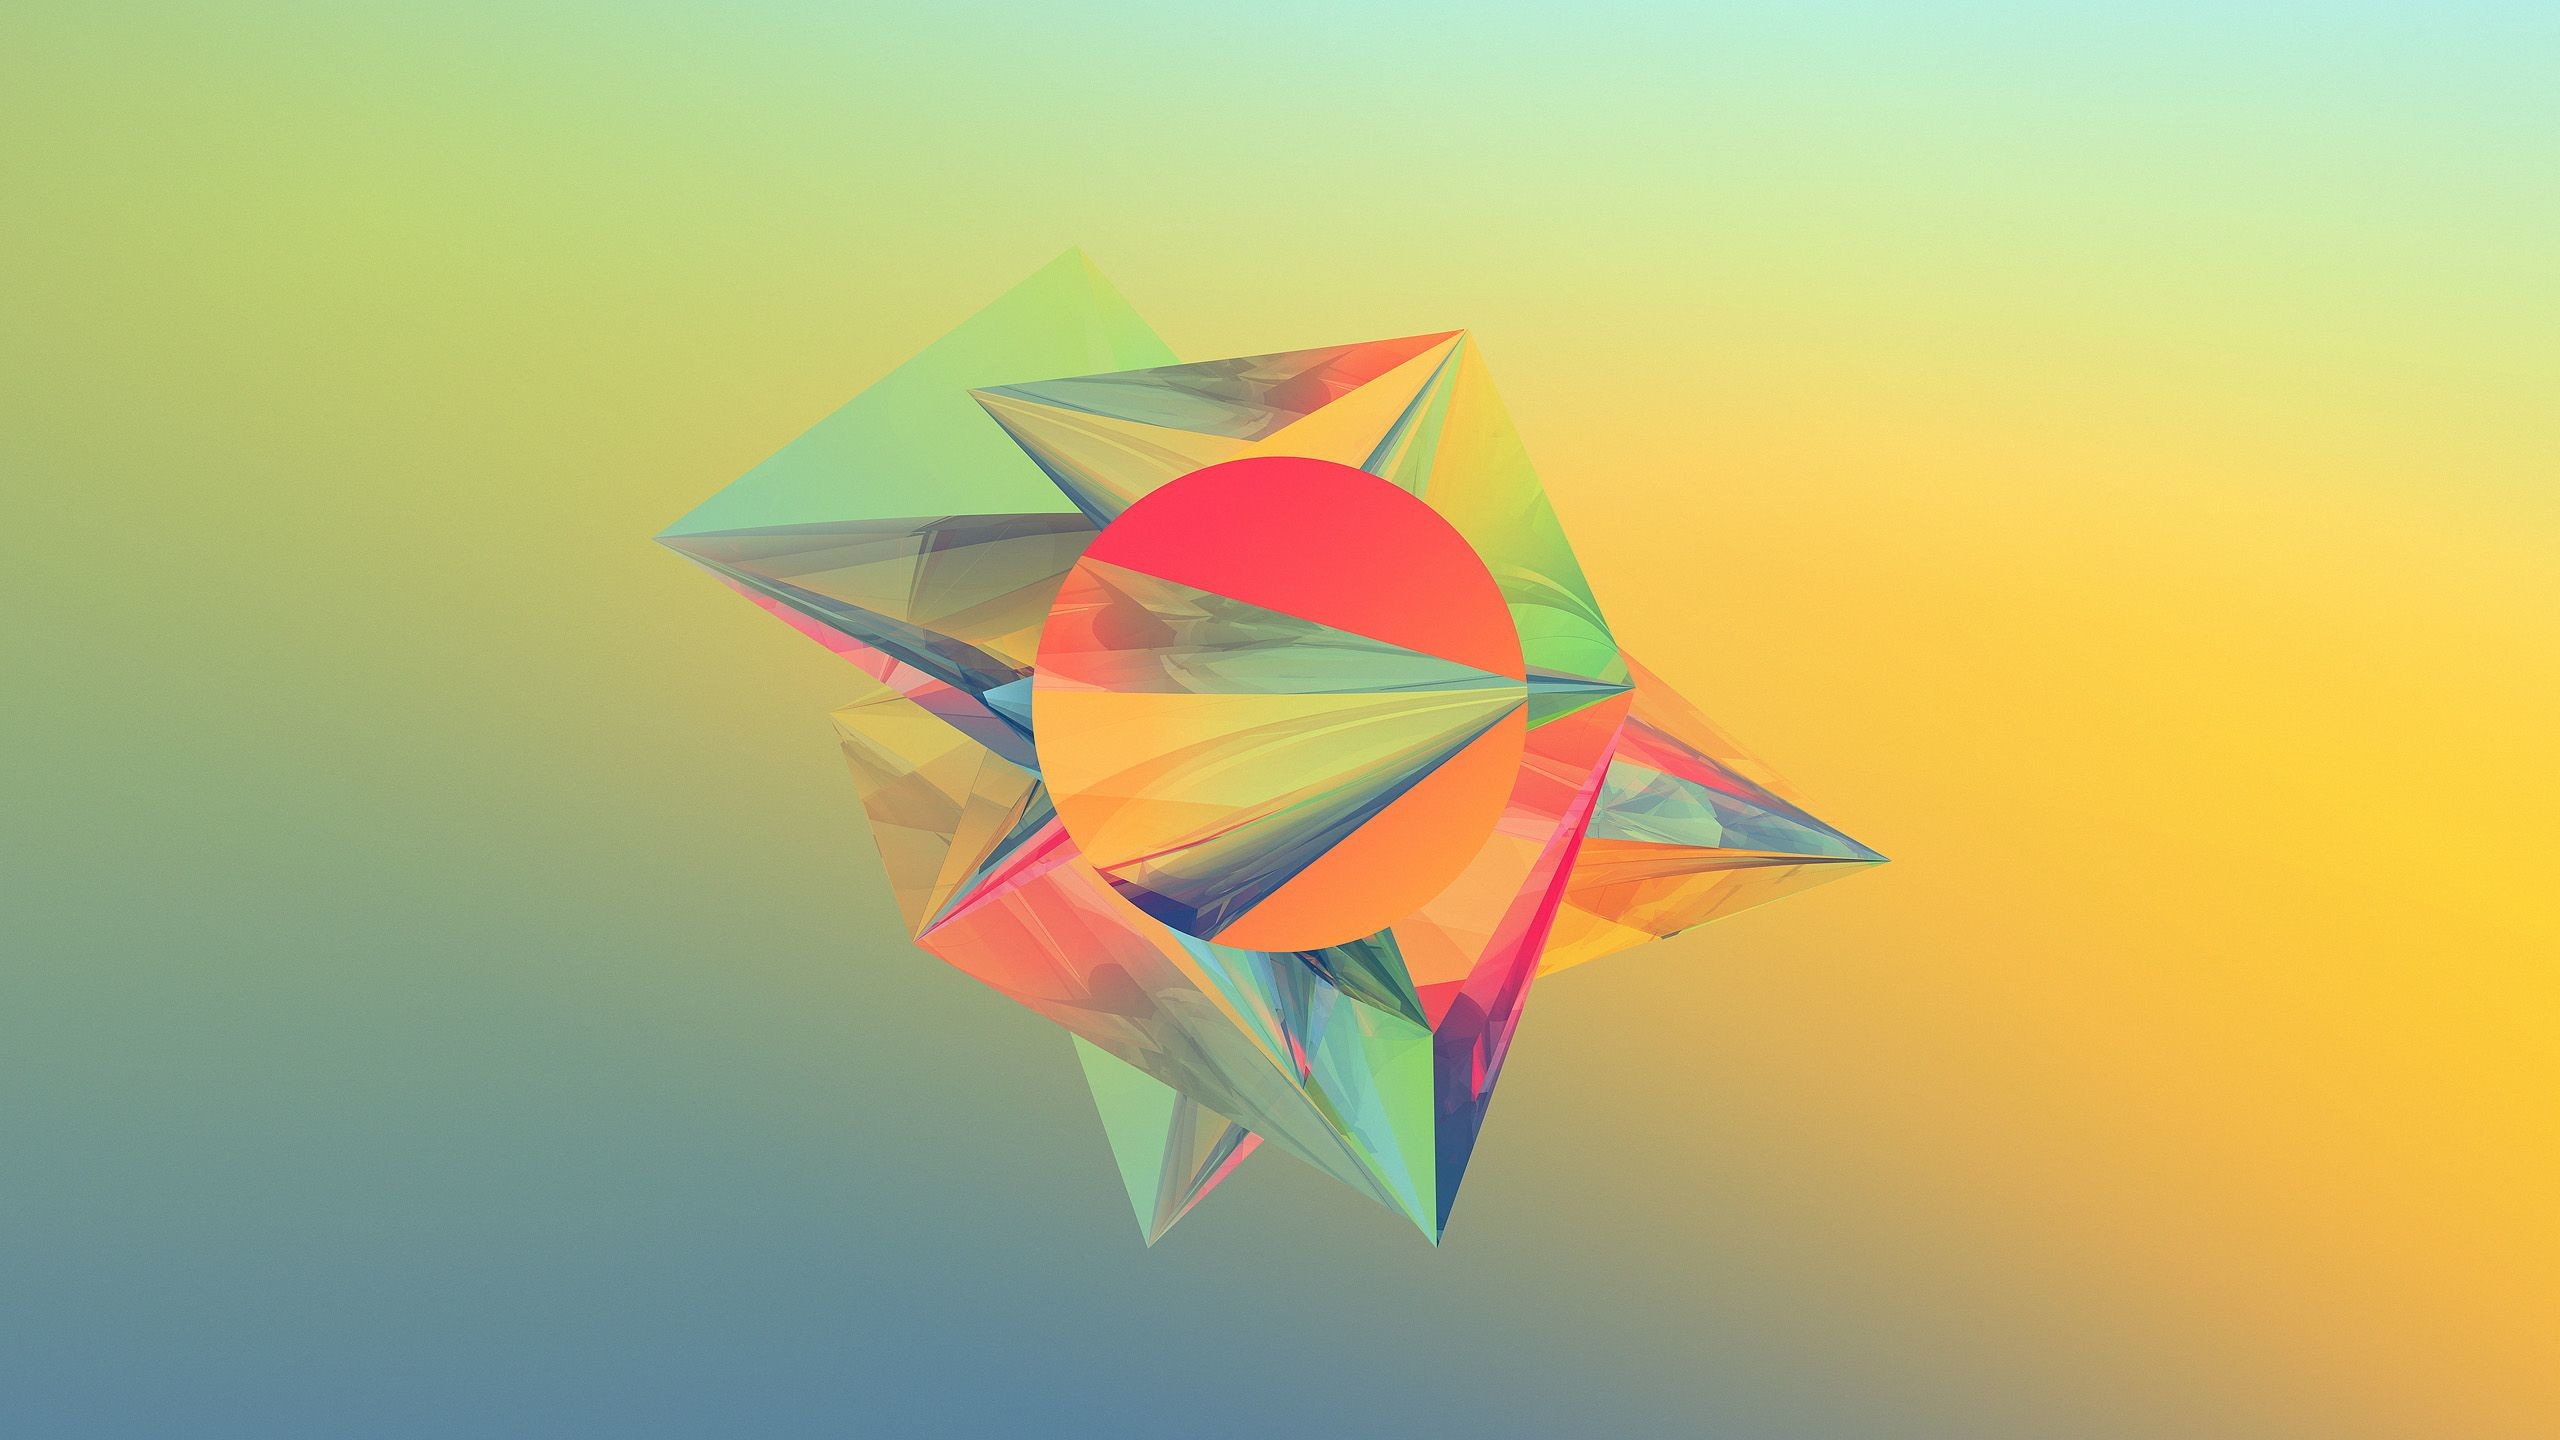 Geometric Abstract Shapes Wallpaper